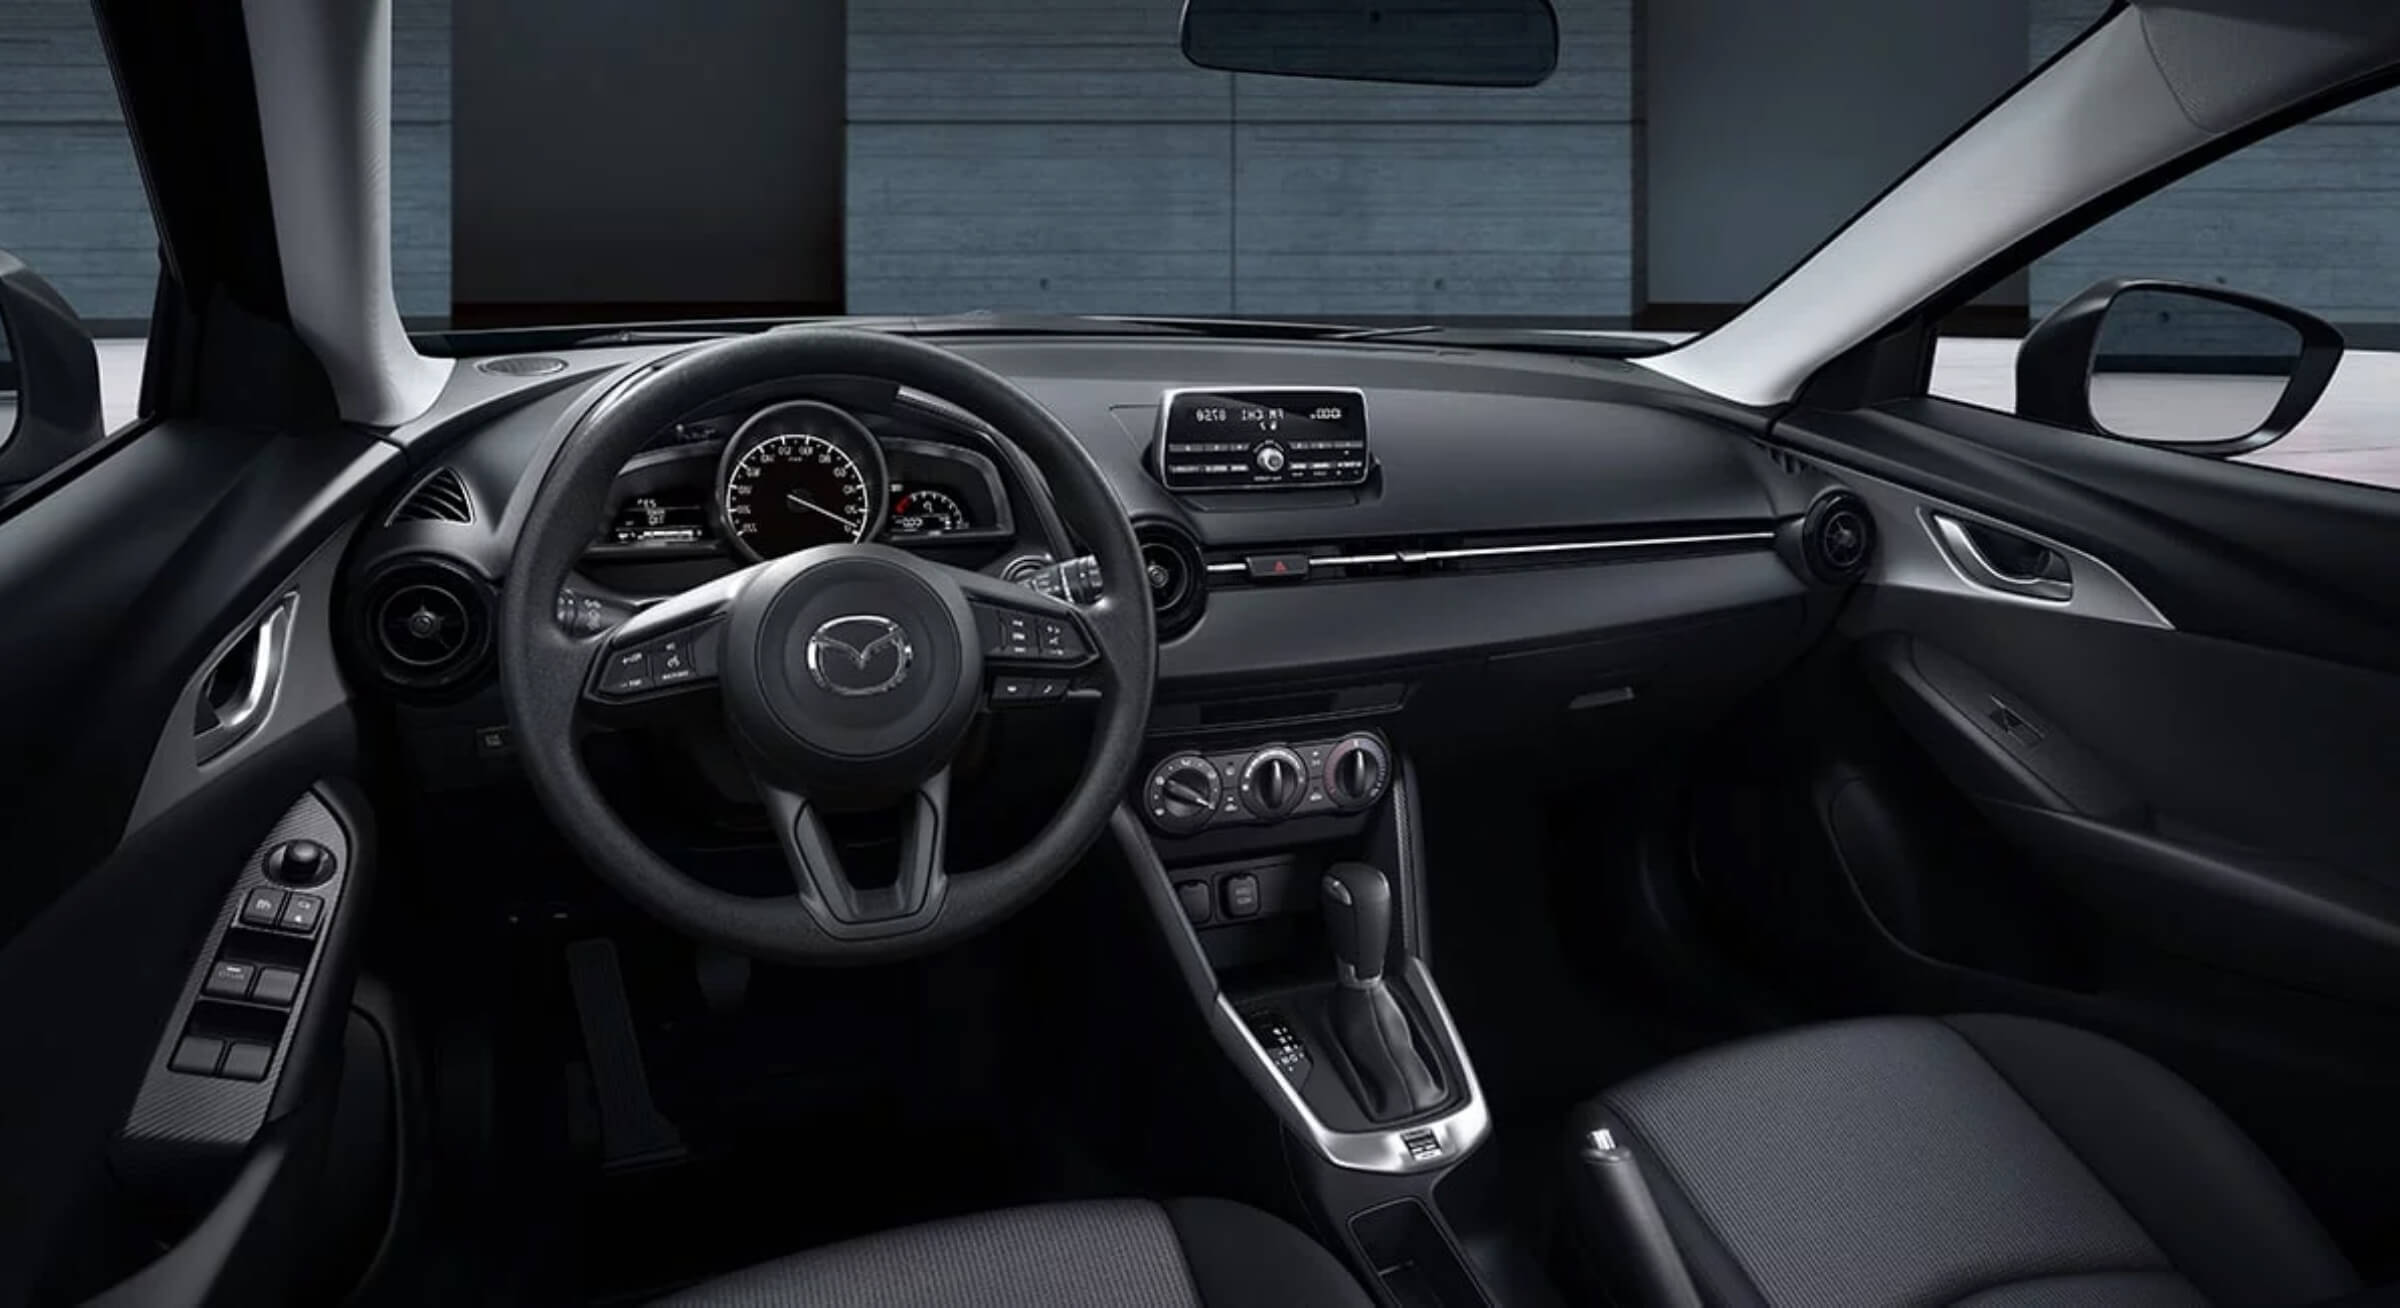 Mazdacx3-Black Leather